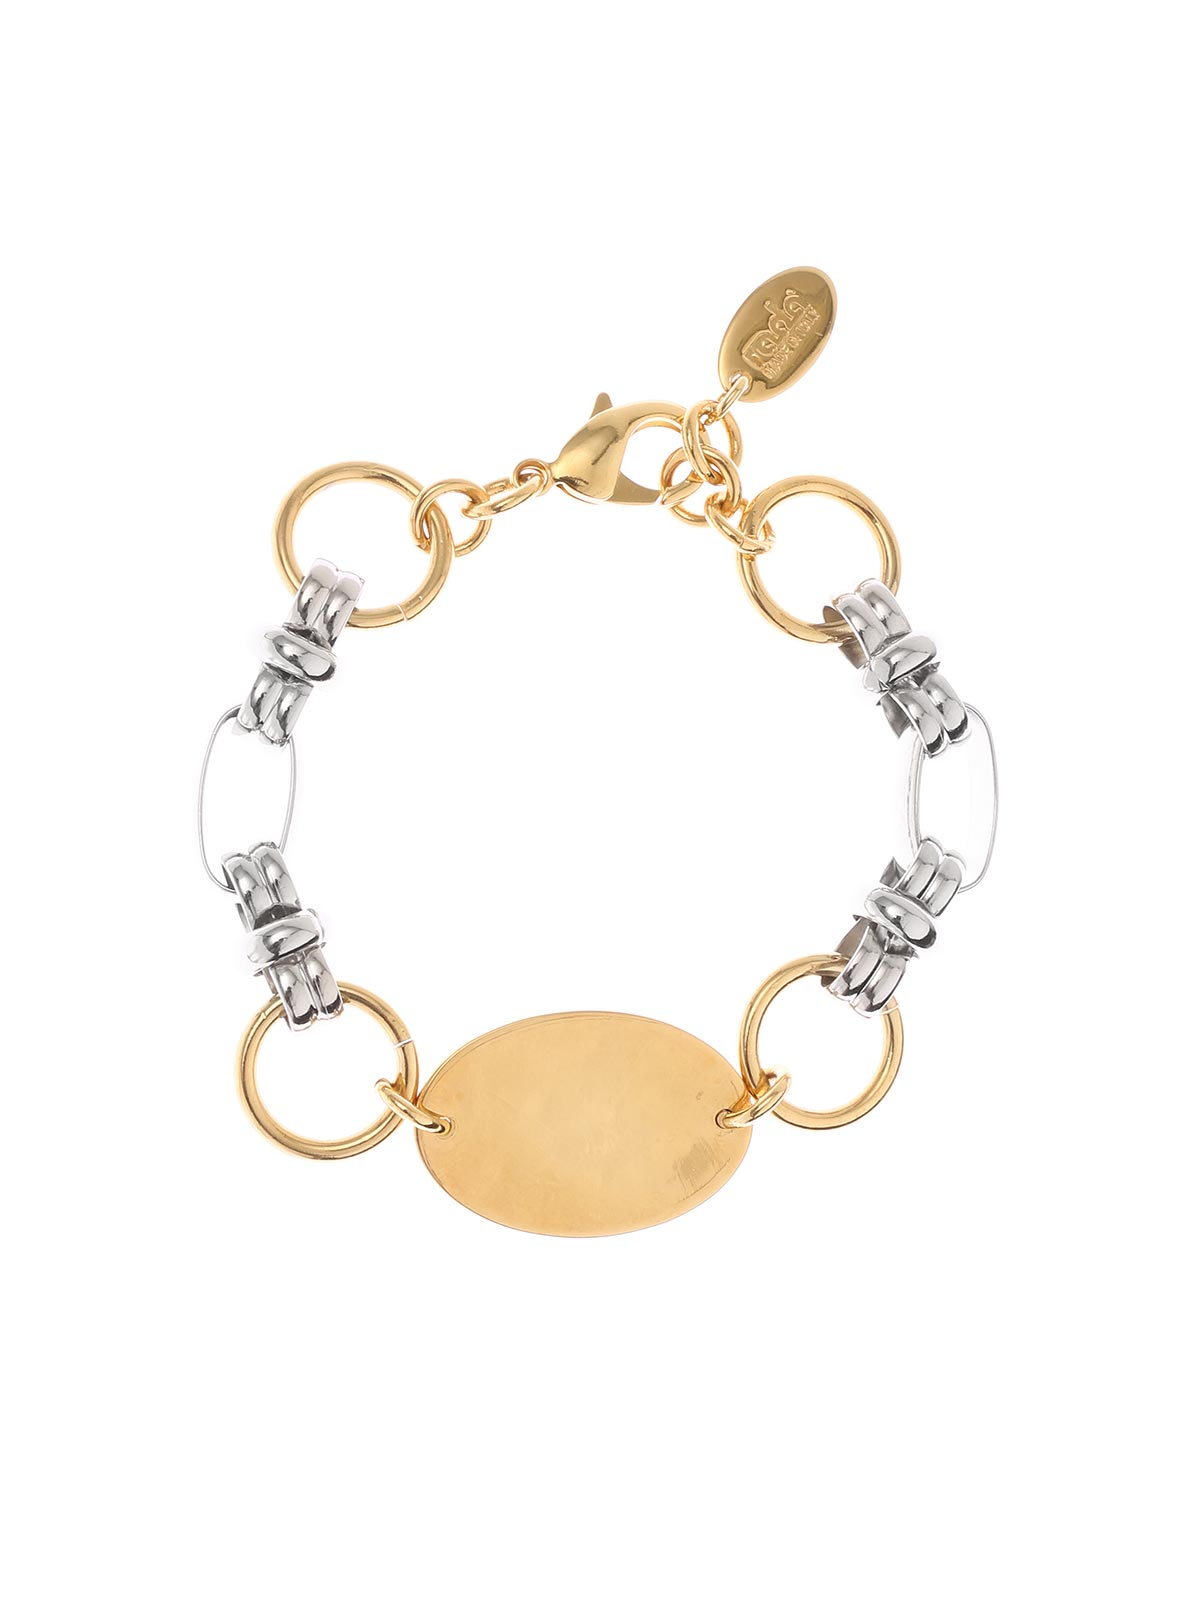 Two-tone brass chain bracelet